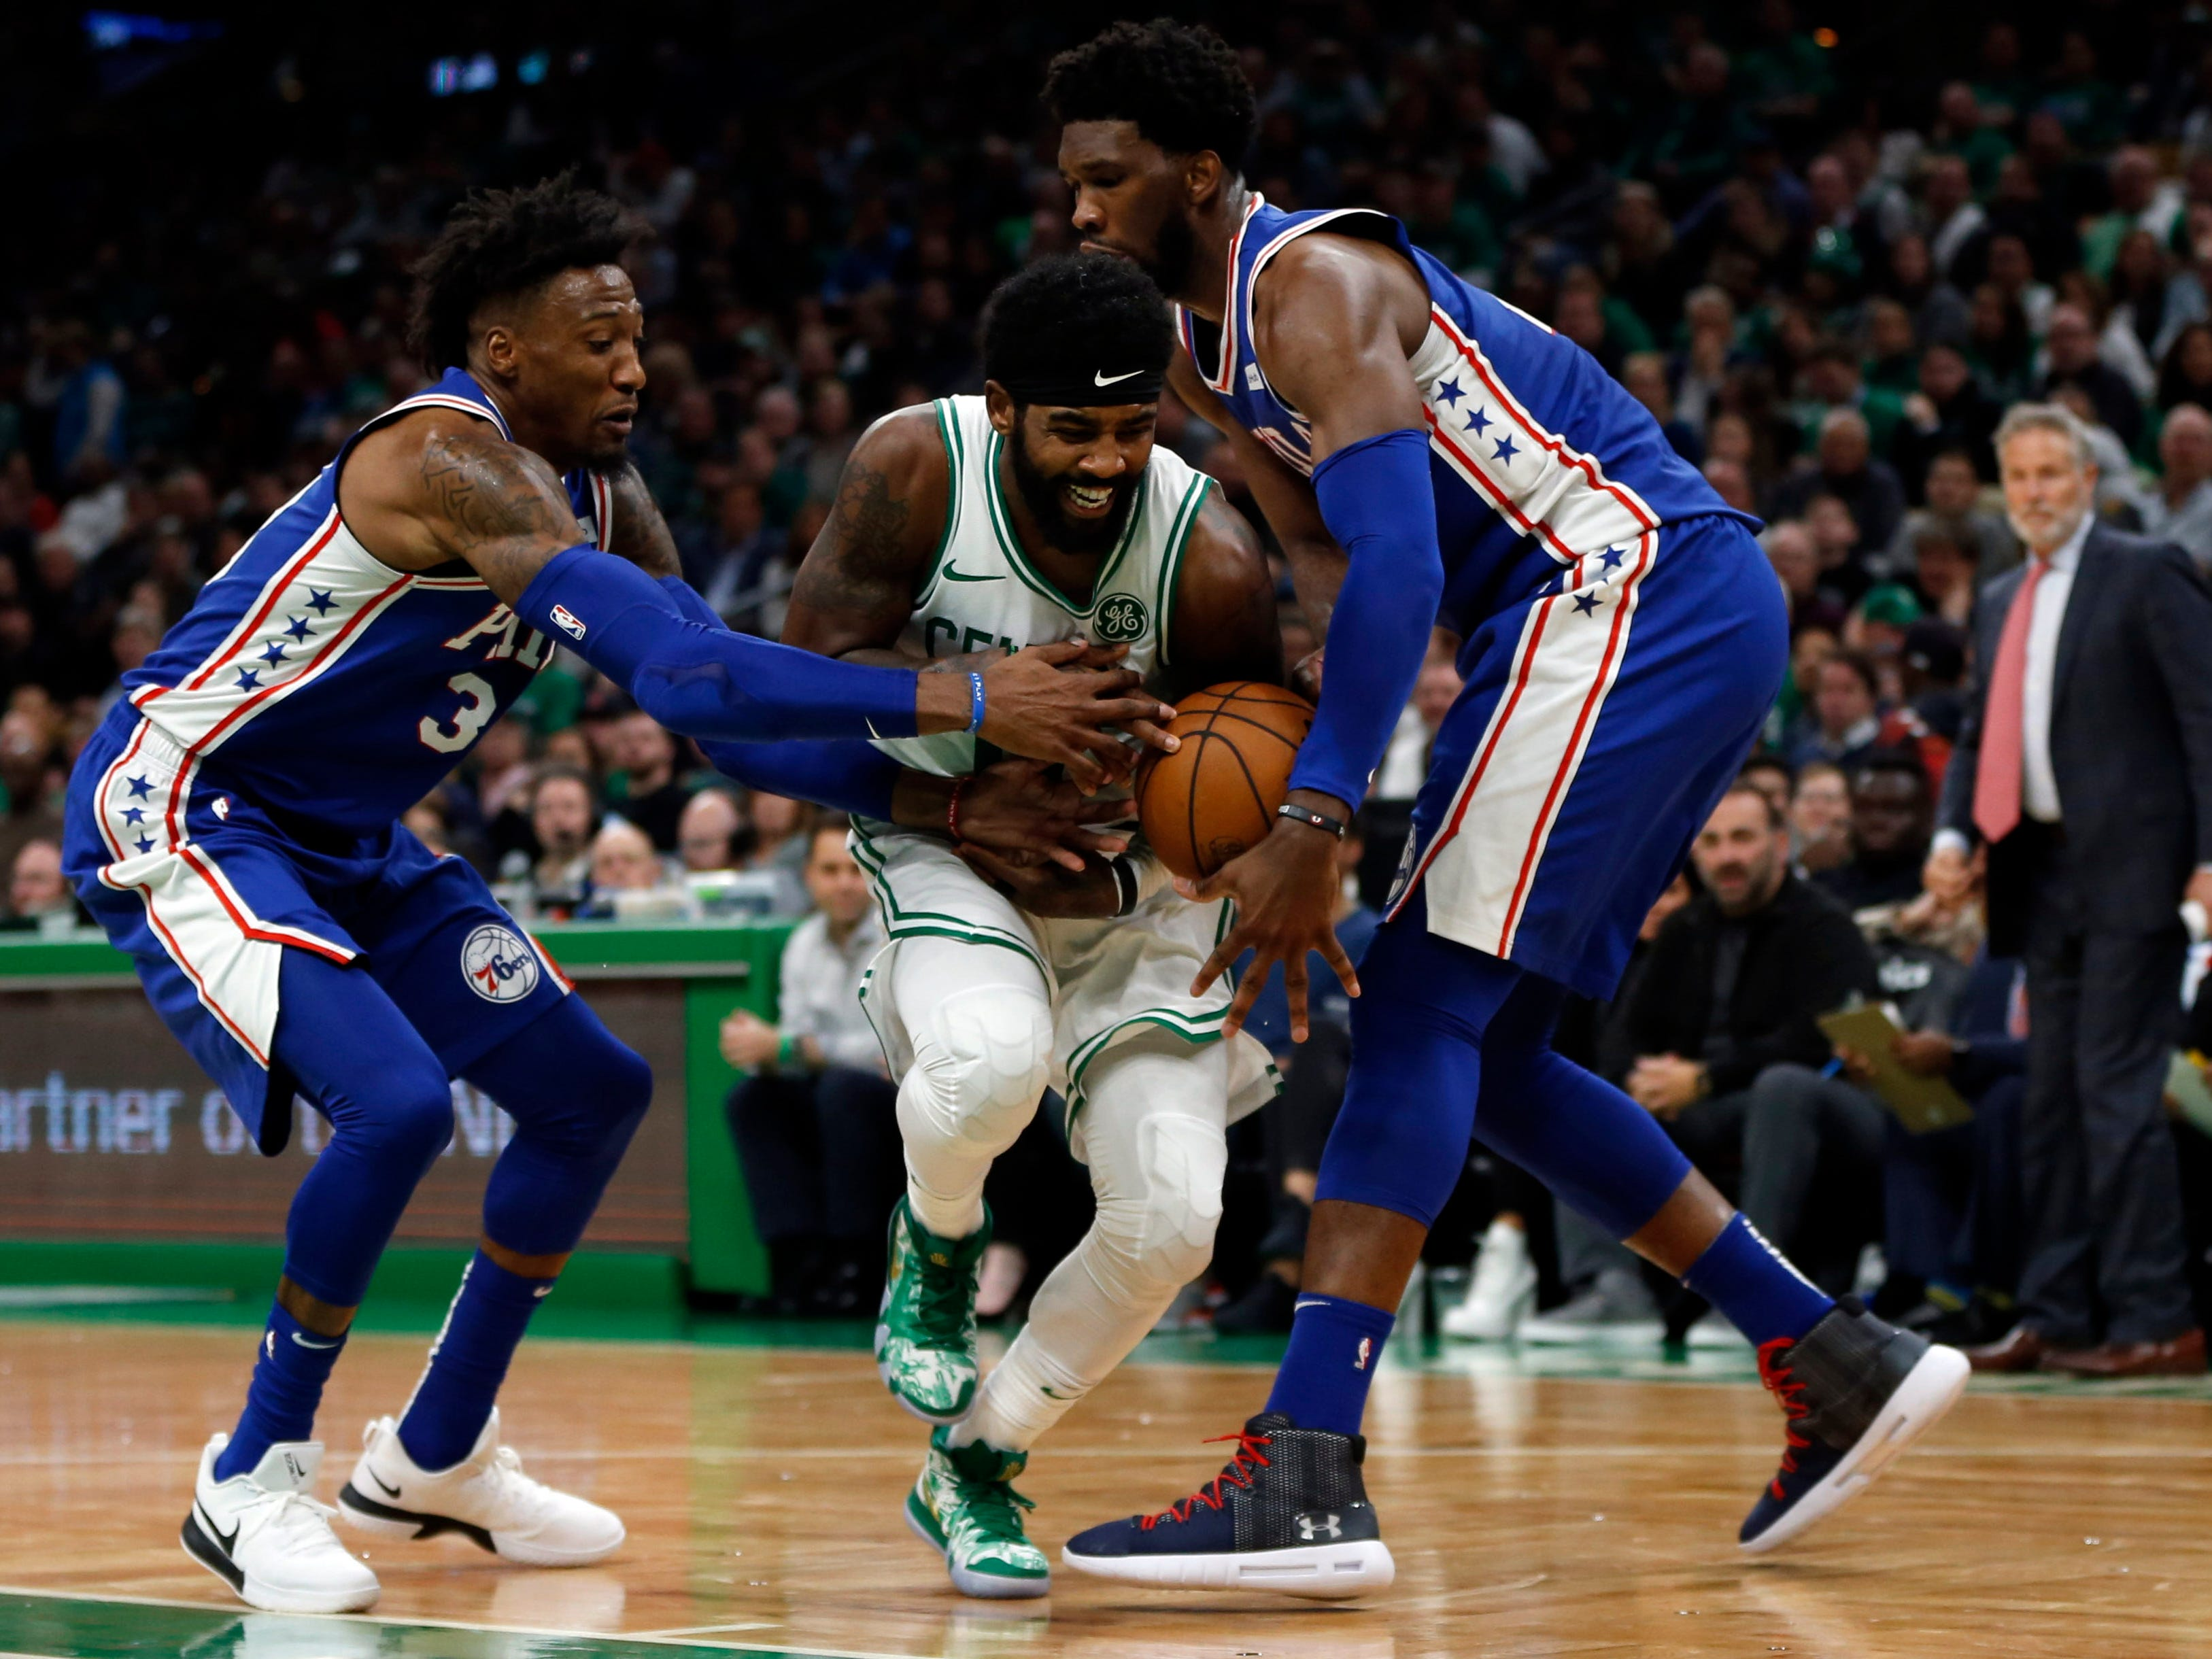 Oct. 16: Boston Celtics guard Kyrie Irving drives between Philadelphia 76ers center Joel Embiid and forward Robert Covington during the second half at TD Garden.